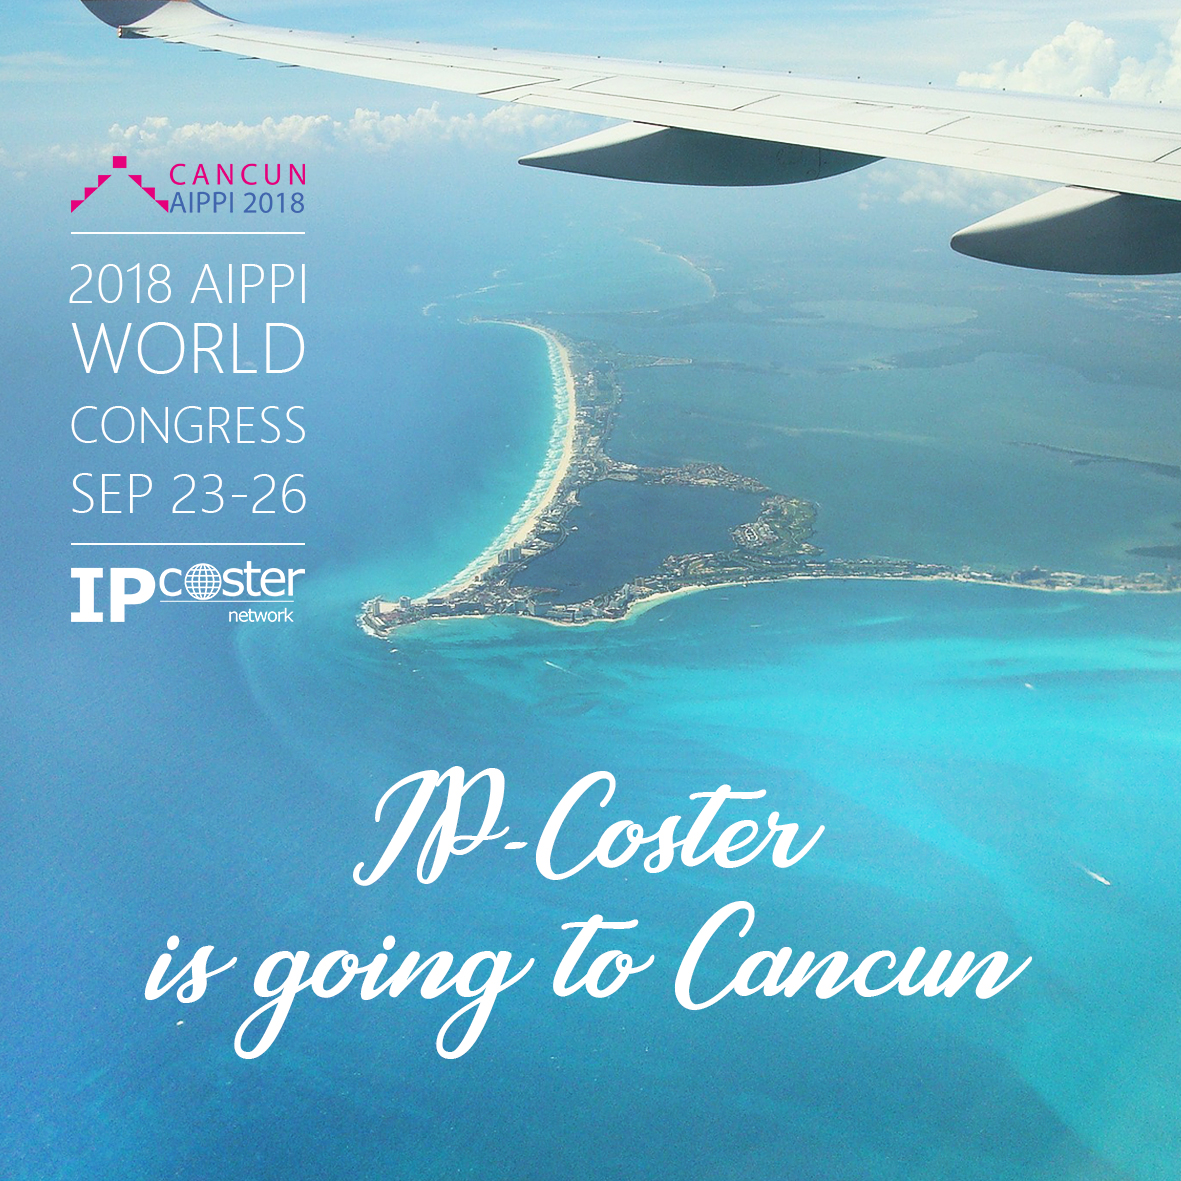 We are pleased to announce that IP-Coster are exhibitors at the upcoming AIPPI World Congress in  Cancun, Mexico.